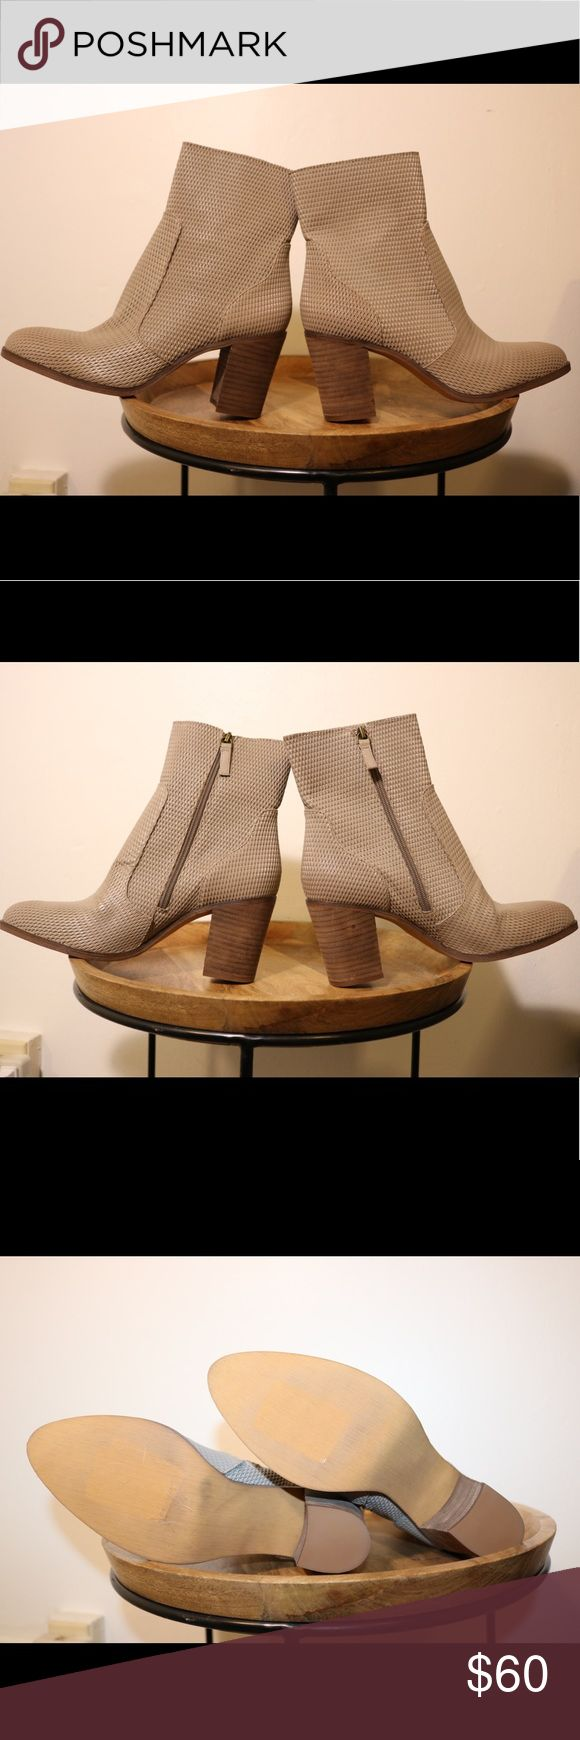 NWOT Hinge Beige/Grey Leather Ankle Boots Perfect condition. Never worn outside of the store. Please note photos were taken with a high resolution camera so things that may look like flaws are just lighting and resolution. I disclose all issues within the item description. Hinge Shoes Ankle Boots & Booties